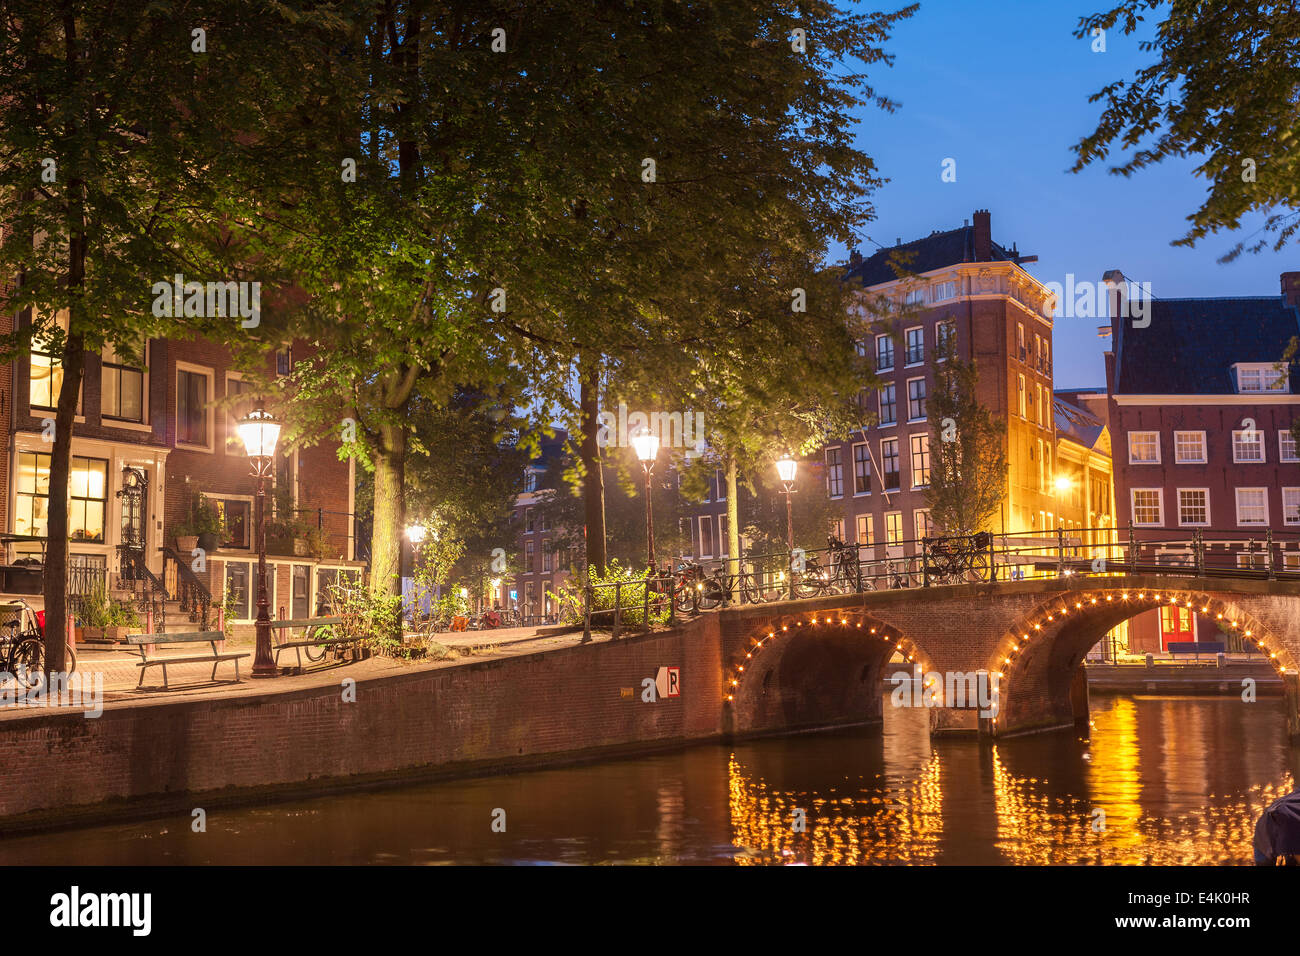 Amsterdam Canal romantic bench from The Fault in Our Stars TFiOS on the Leidsegracht Canal at night evening Amsterdam - Stock Image